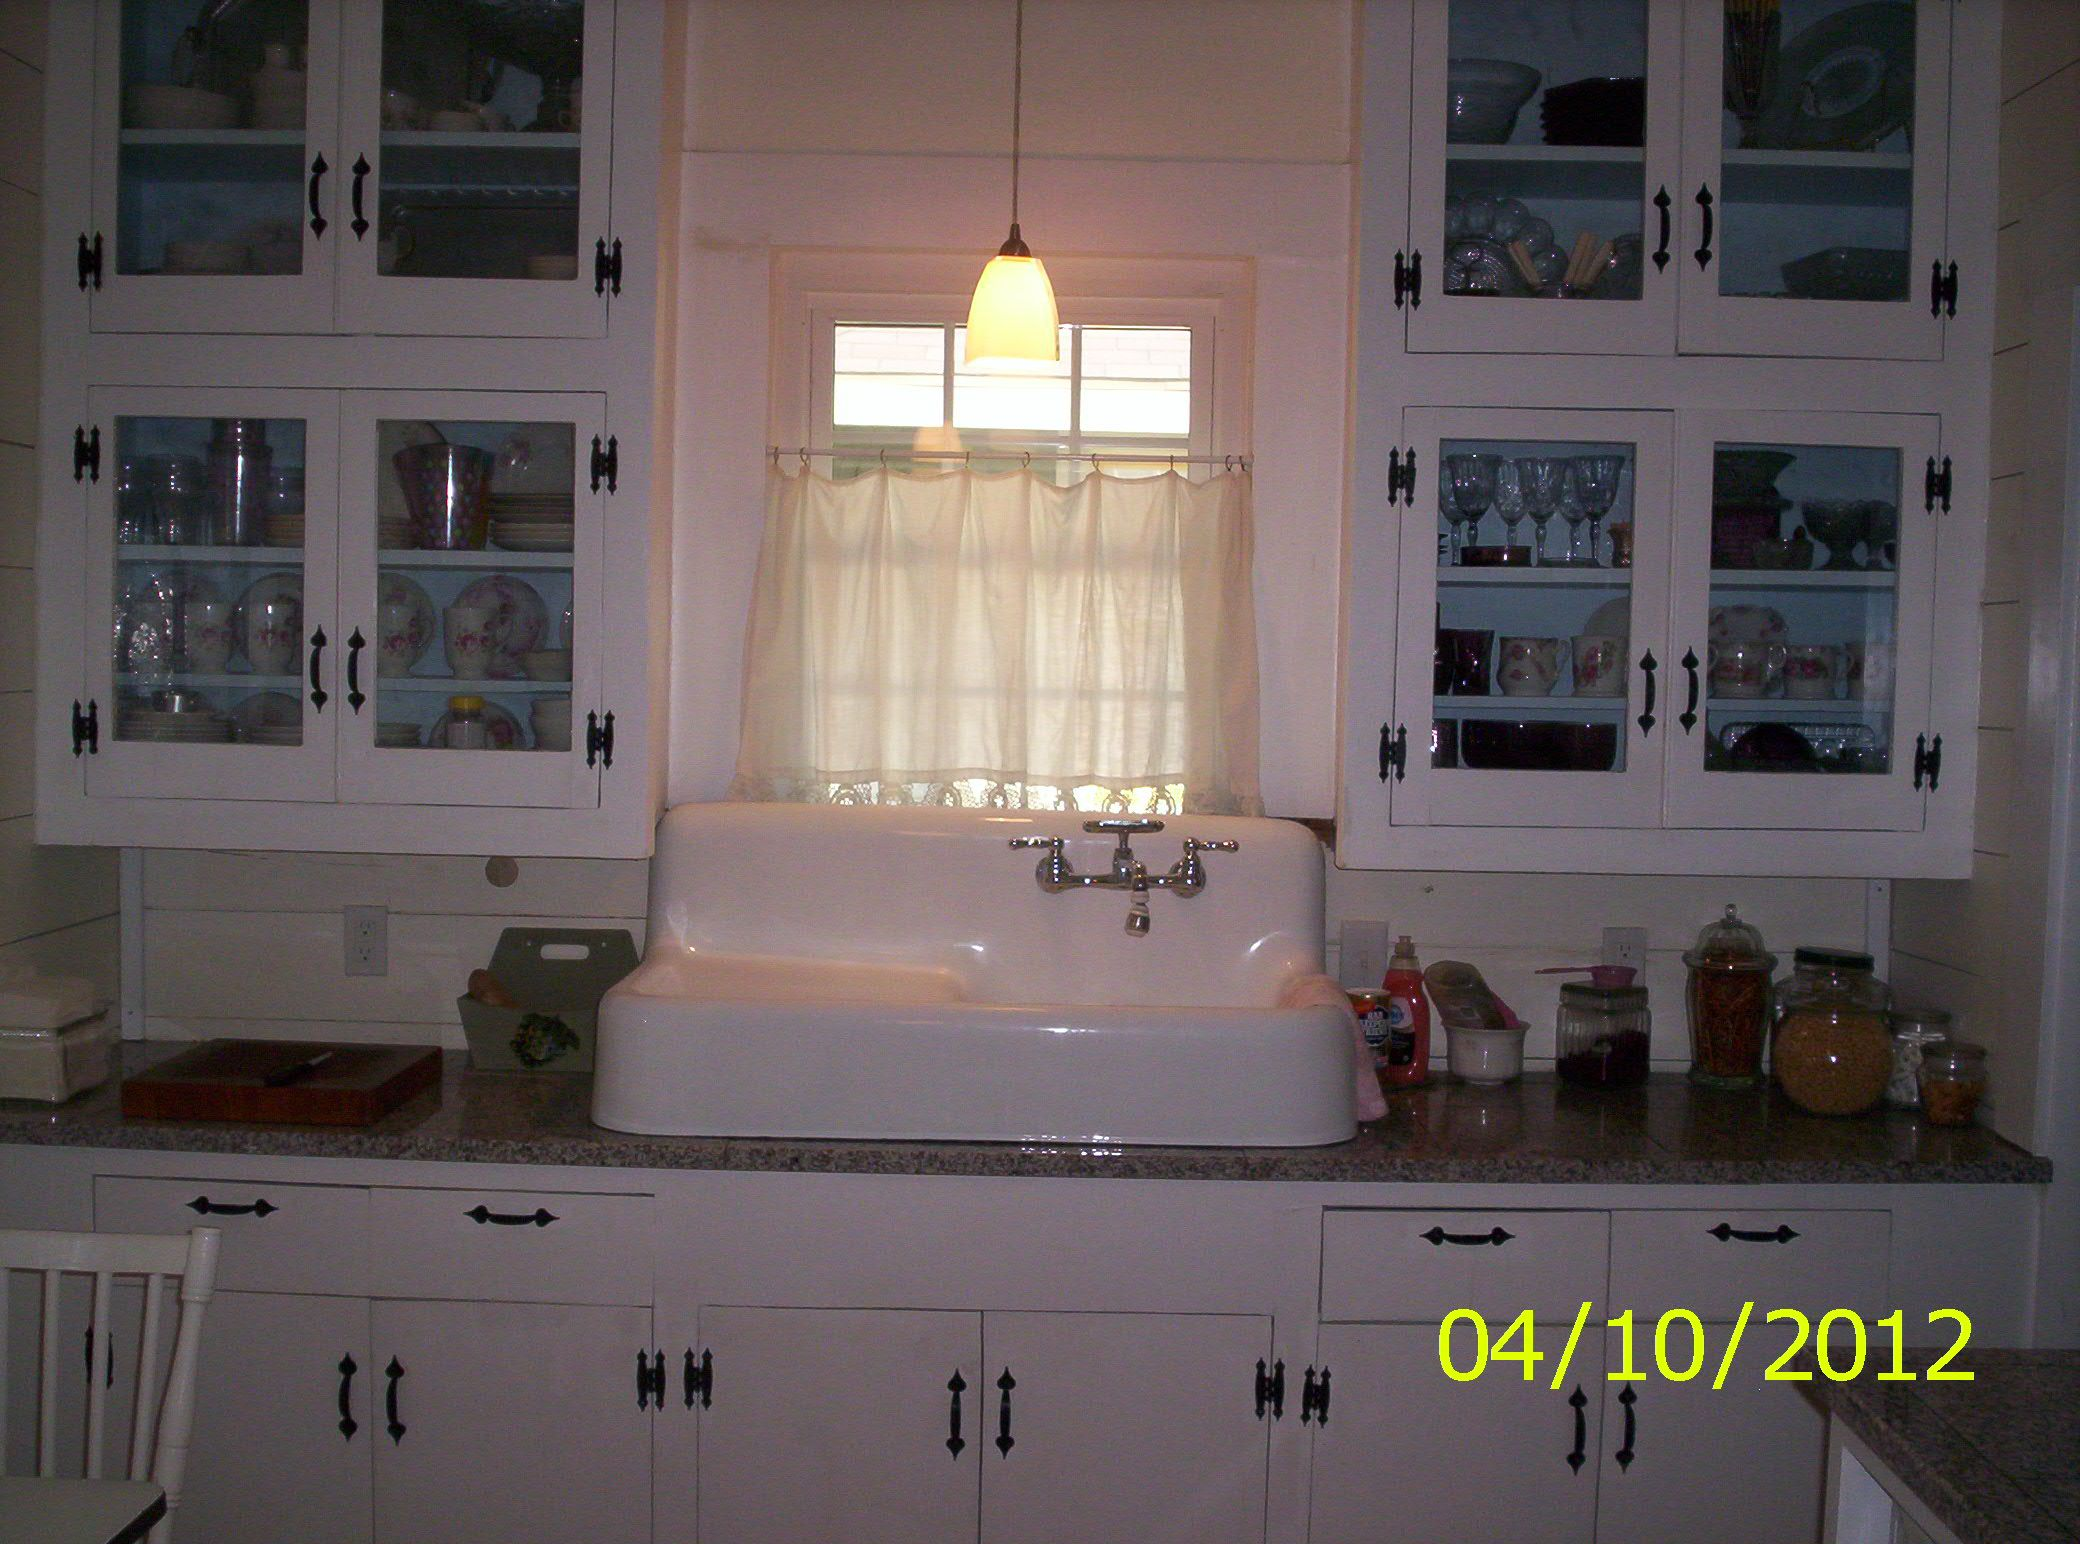 Kitchen sink is new but of vintage design.  This bank of cabinets are original to the 1926 house. The solid center wood door panels were cut-out and replaced with glass. The inside of the cabinets were painted an intense blue which really makes the white china pop. Modern cased glass pendant lighting is from Lowe's